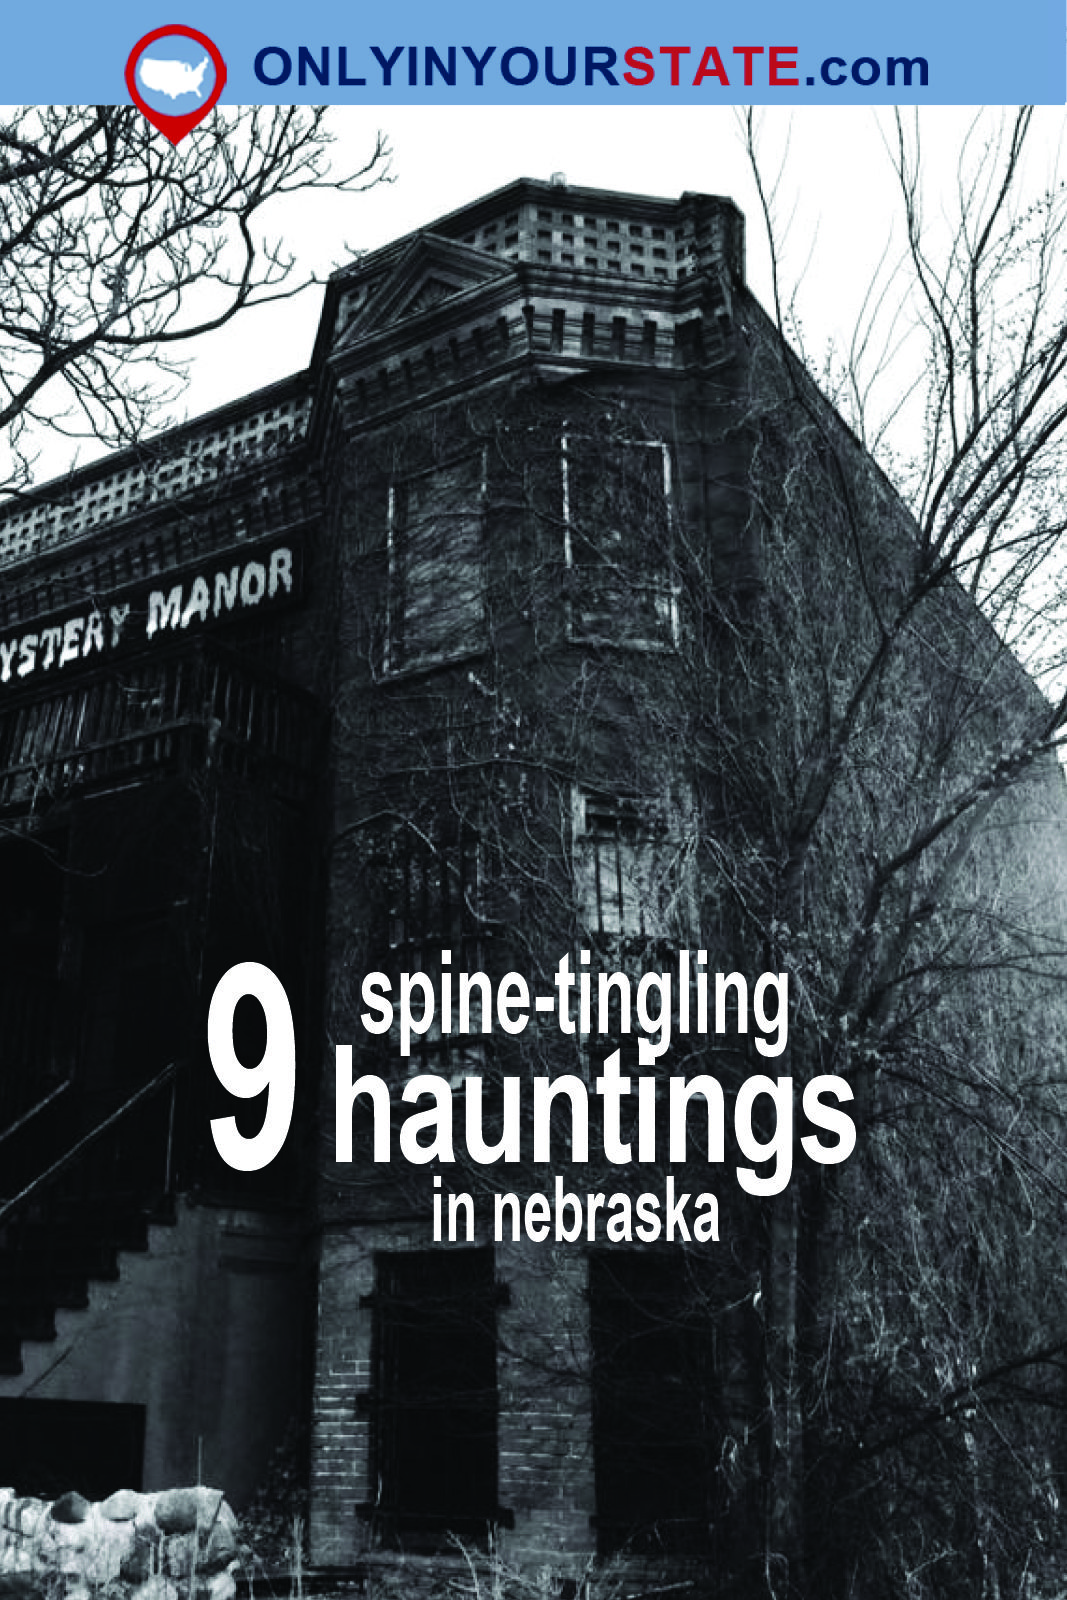 These 9 Hauntings In Nebraska Will Send Chills Down Your